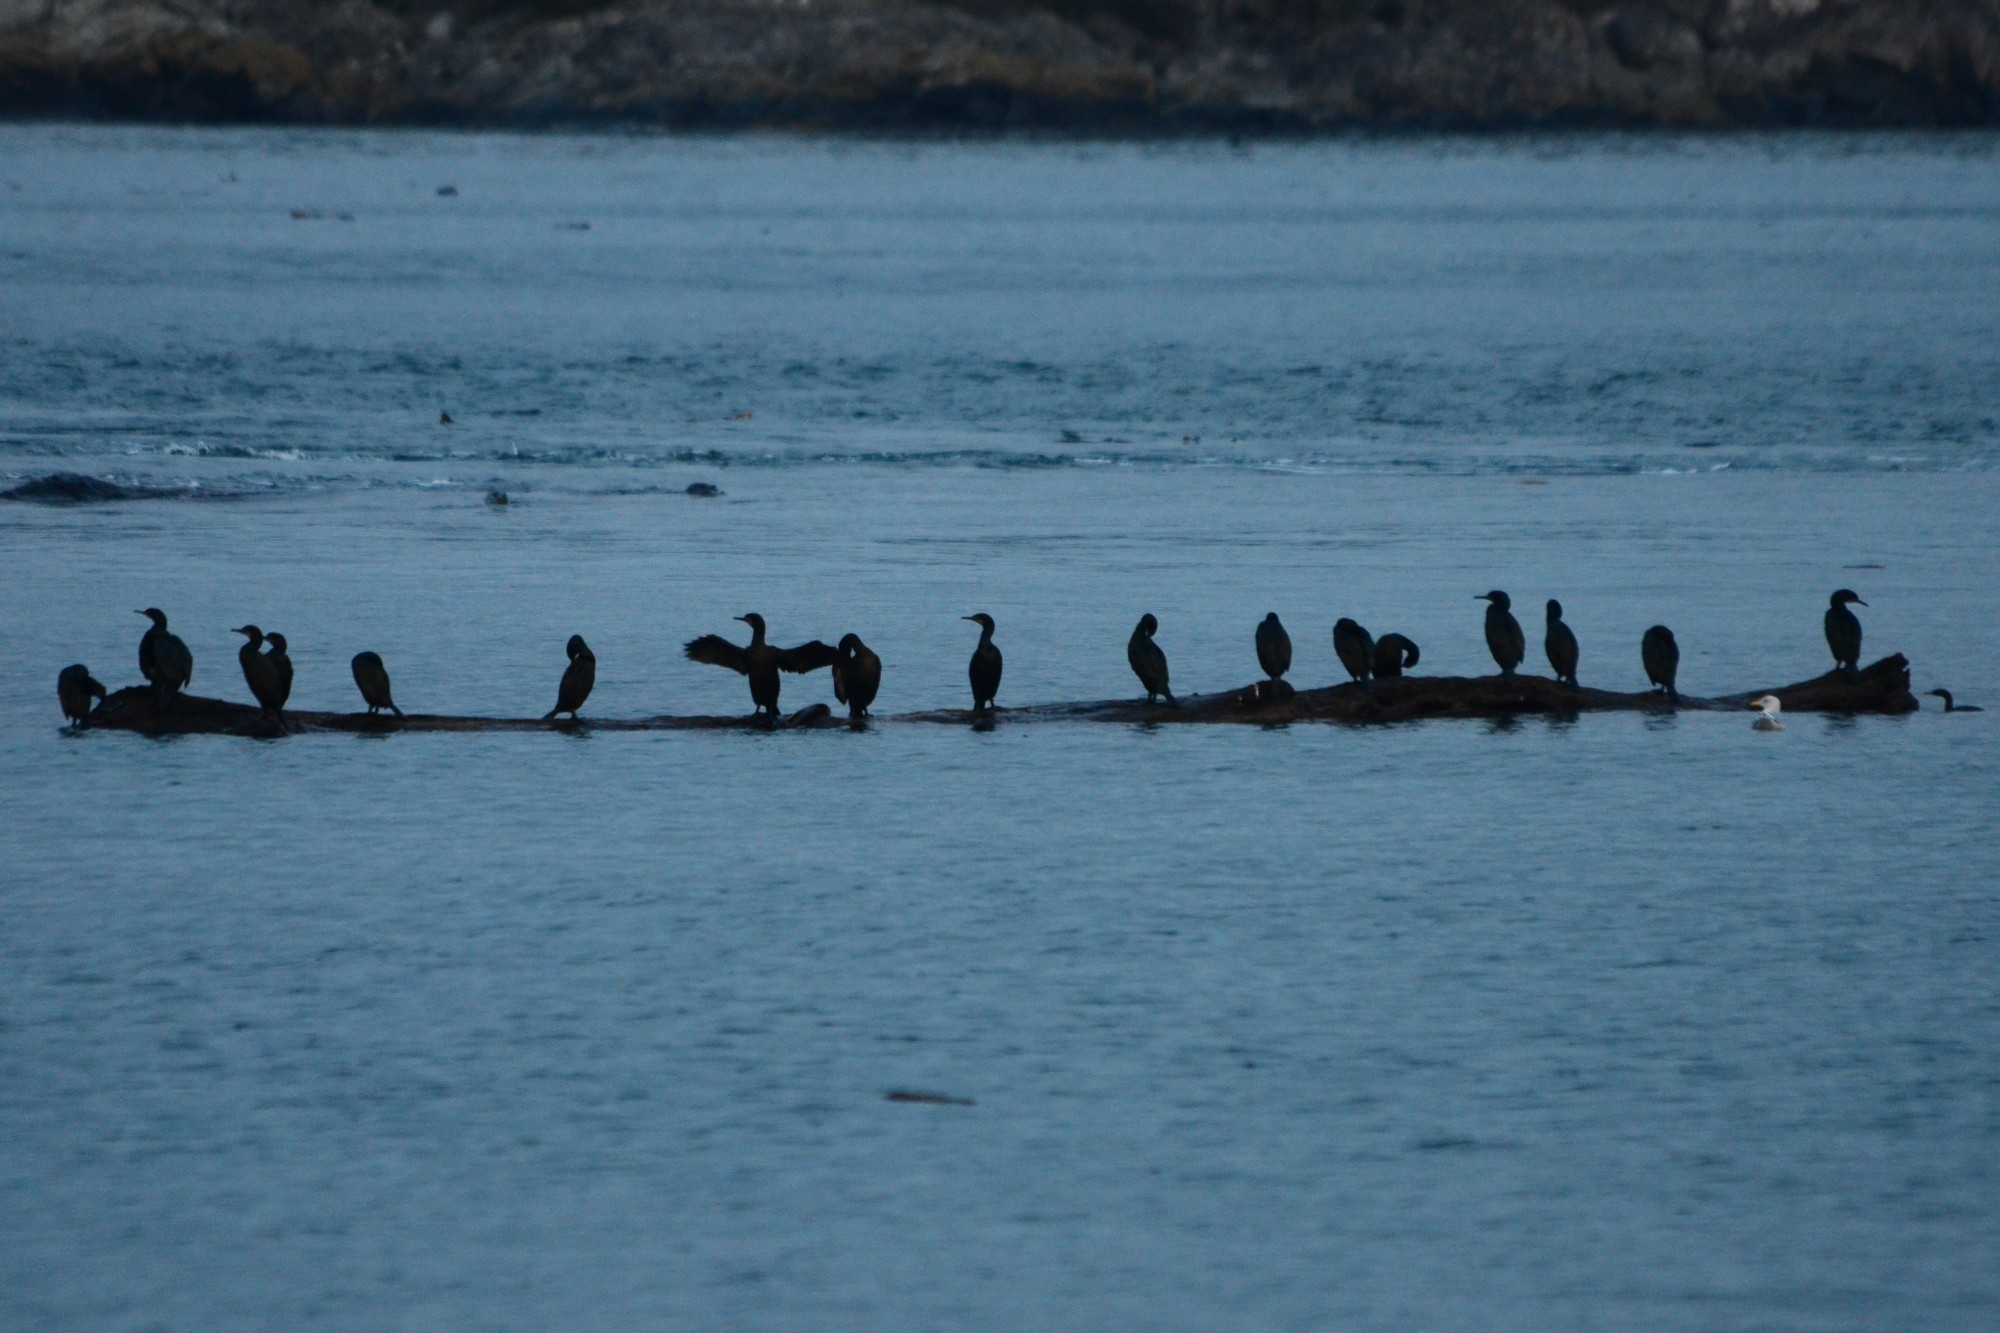 Cormorants taking a rest on some drift wood